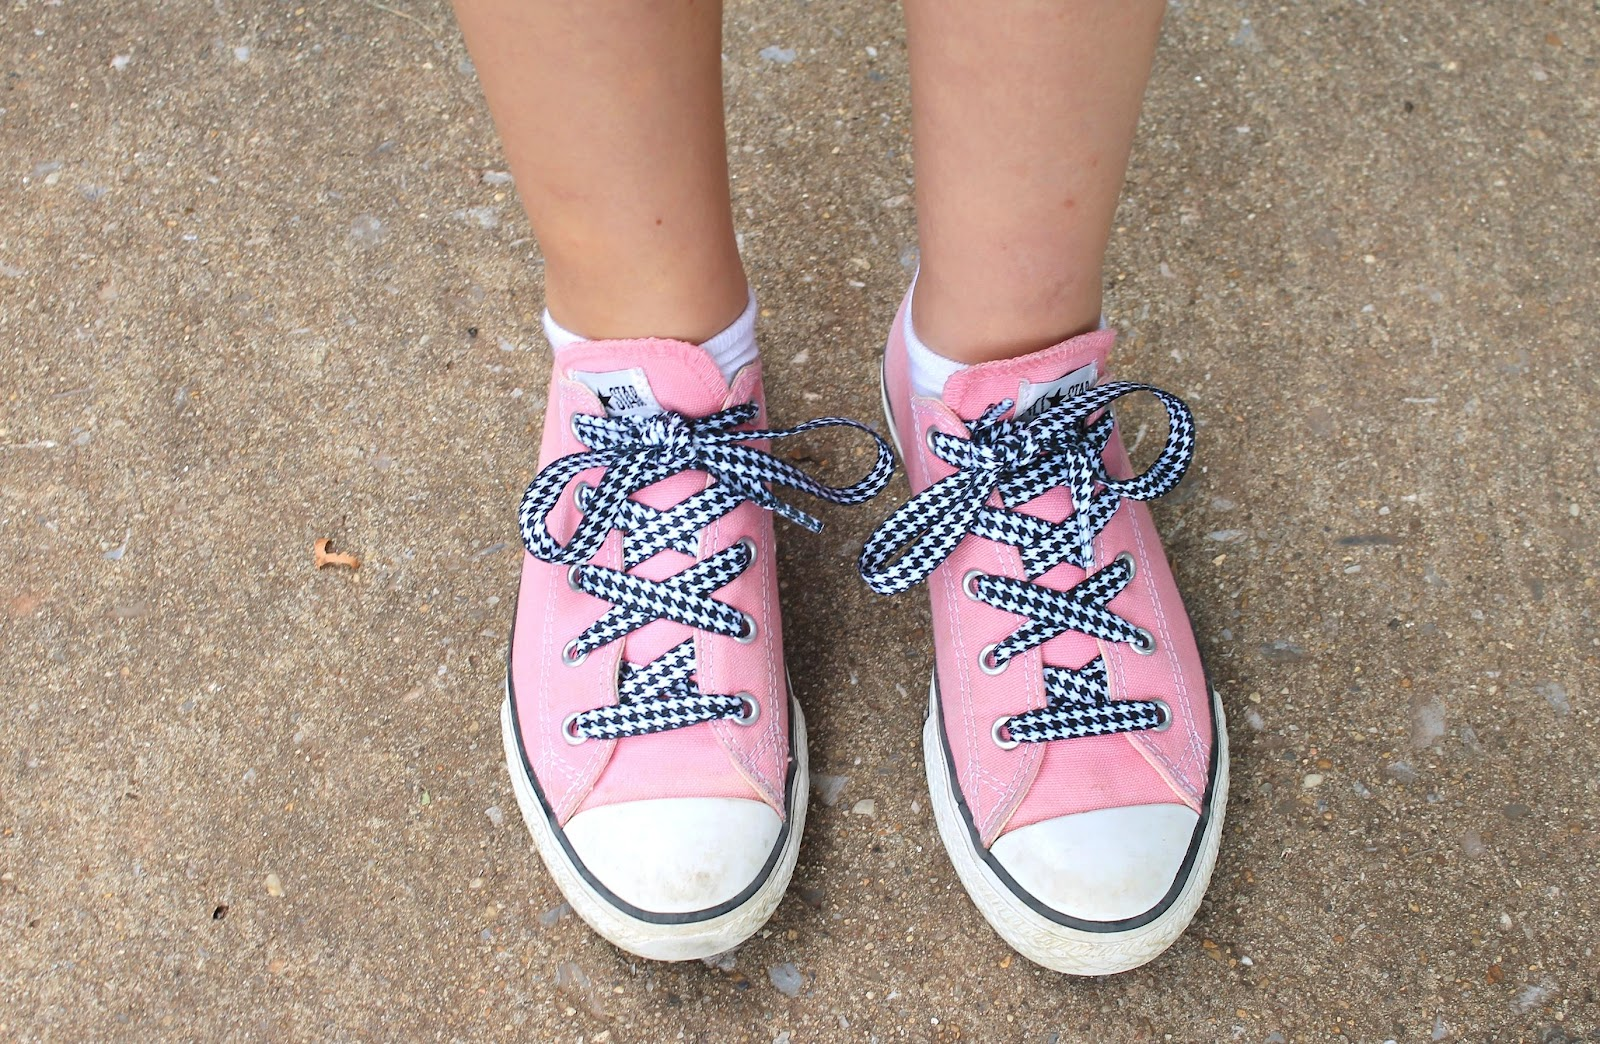 Pink Shoe Laces For Cleats